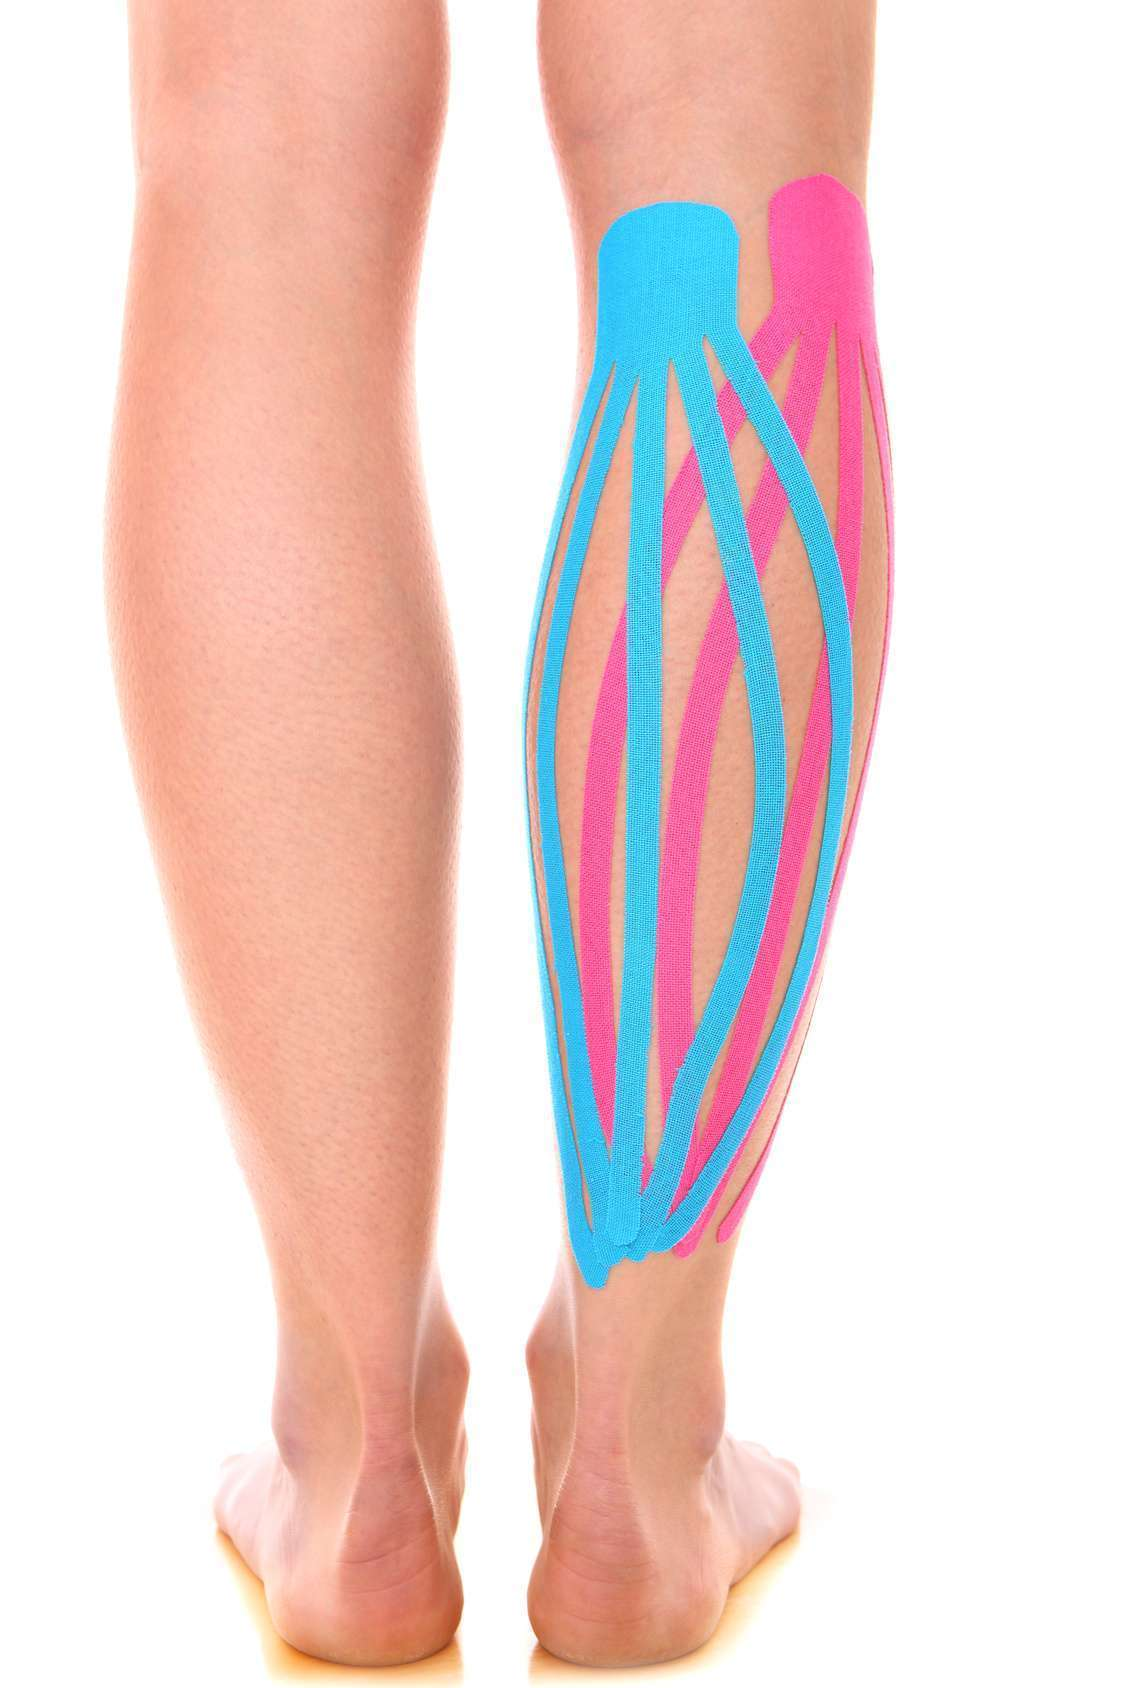 Pulled Calf Muscle Treatment Muscle Pull Muscle Pull